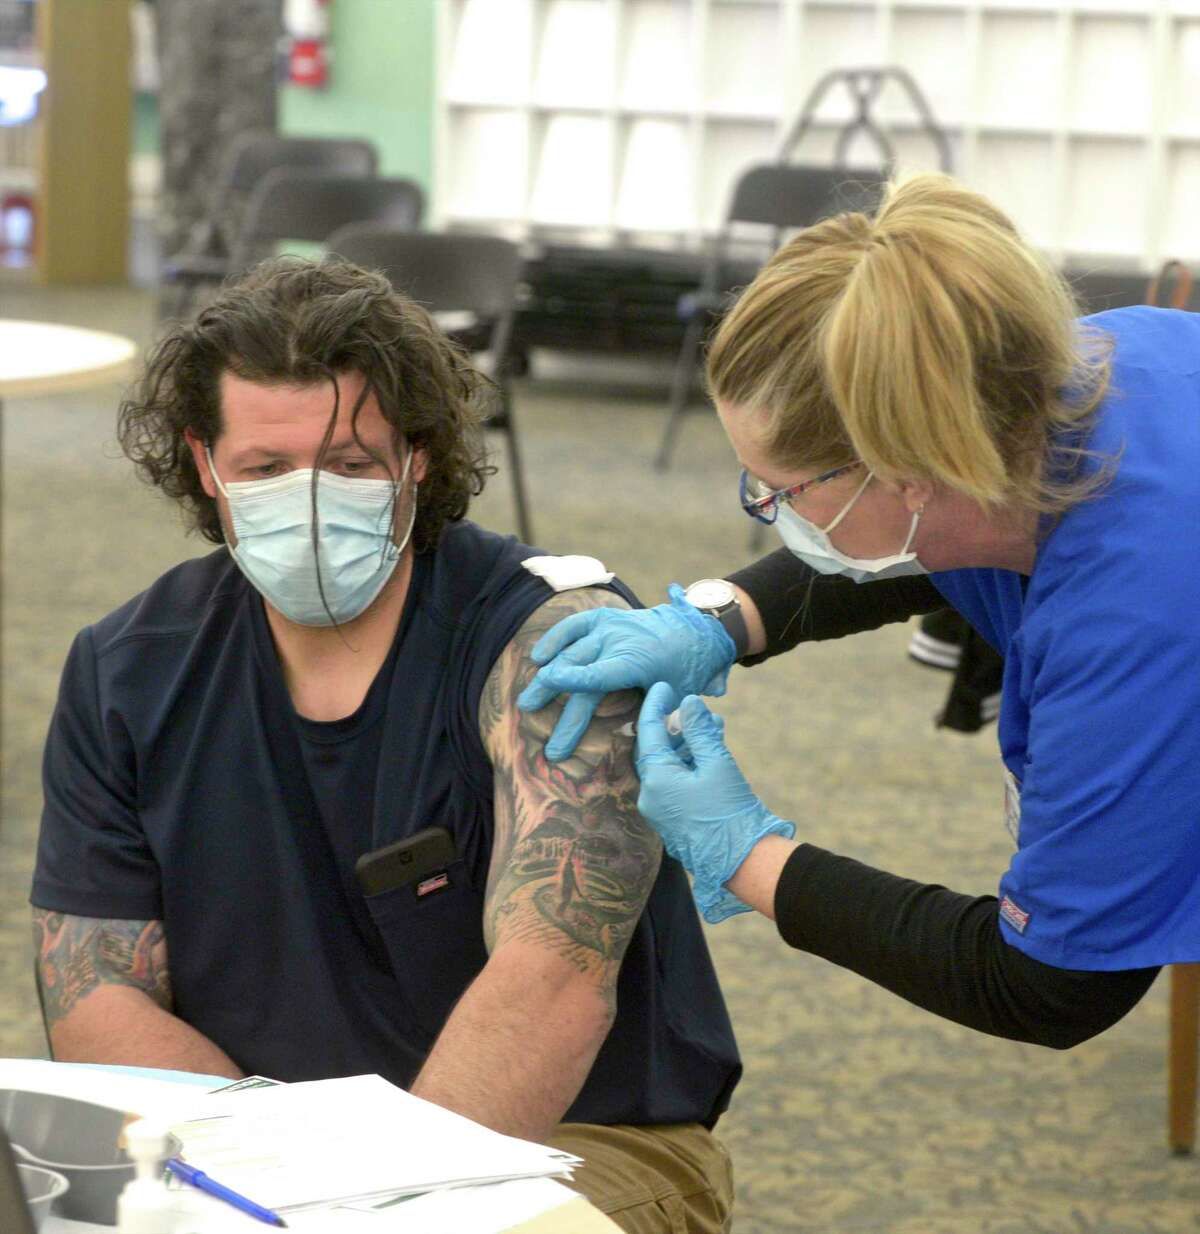 EMT Eugenia McGovern, right, from Griffin Health, administers the first shot of Moderna vaccine to Anthony Capirichio, of Danbury, who was a walk-in to the COVID-19 vaccine clinic held in the Danbury Public Library on Friday, April 30, 2021, in Danbury, Conn. The clinic is part of a partnership between the state, Federal Emergency Management Agency (FEMA) and the federal government.